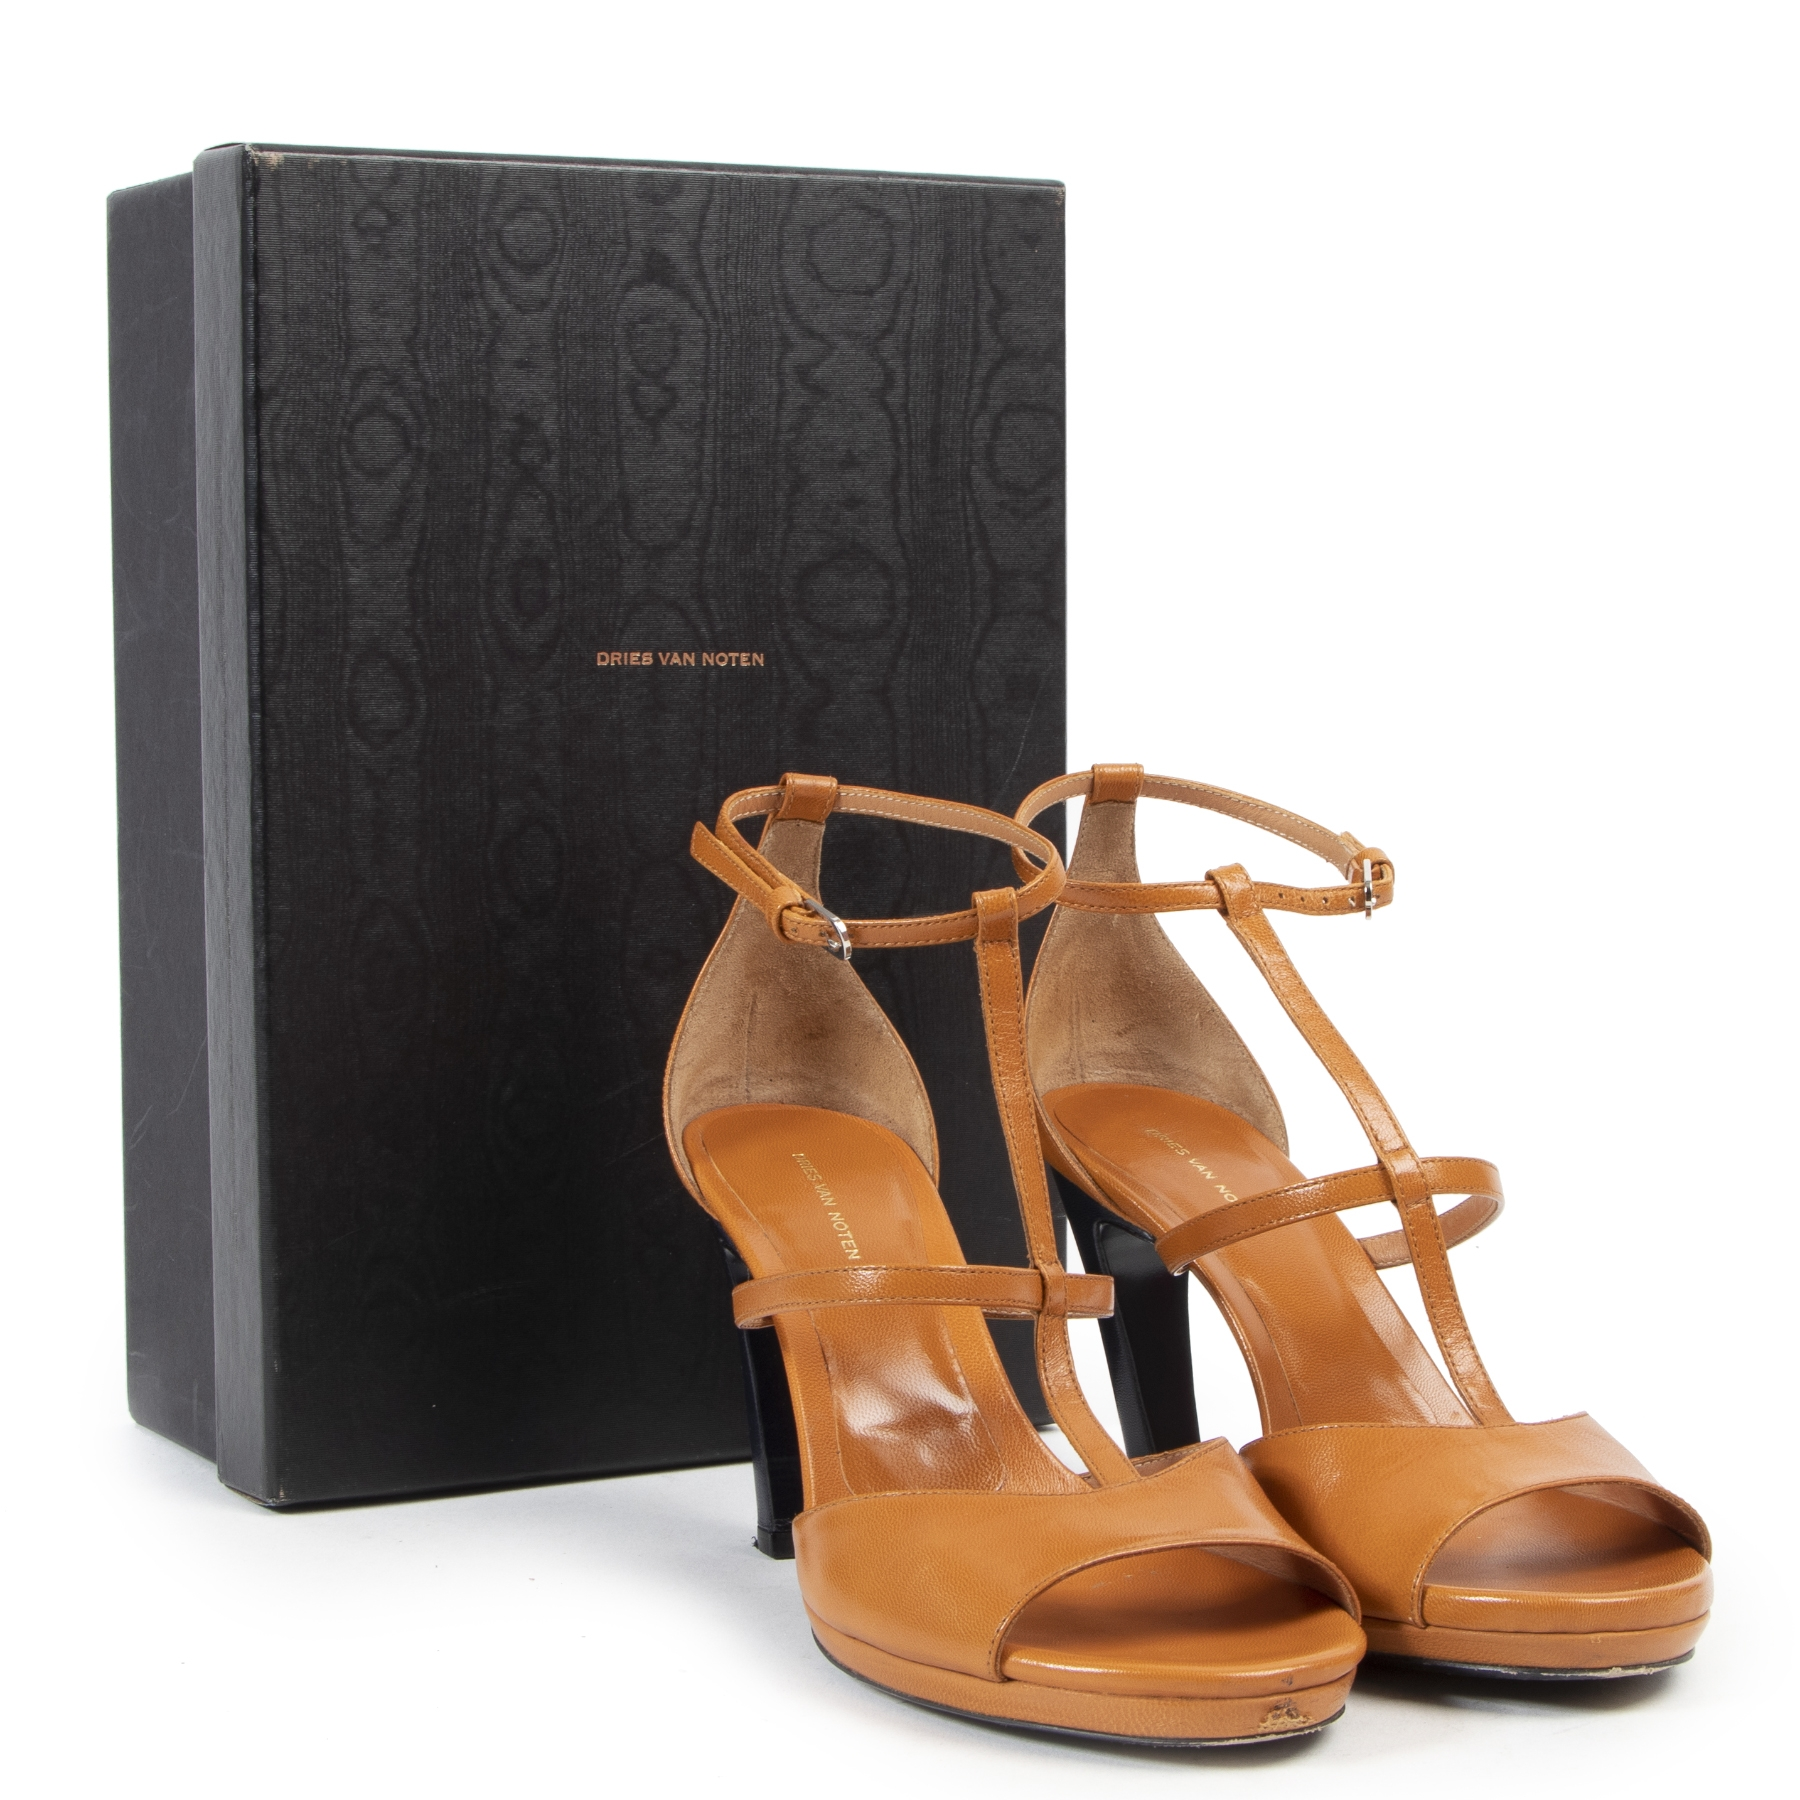 Dries Van Noten Orange Strappy Heeled Sandals